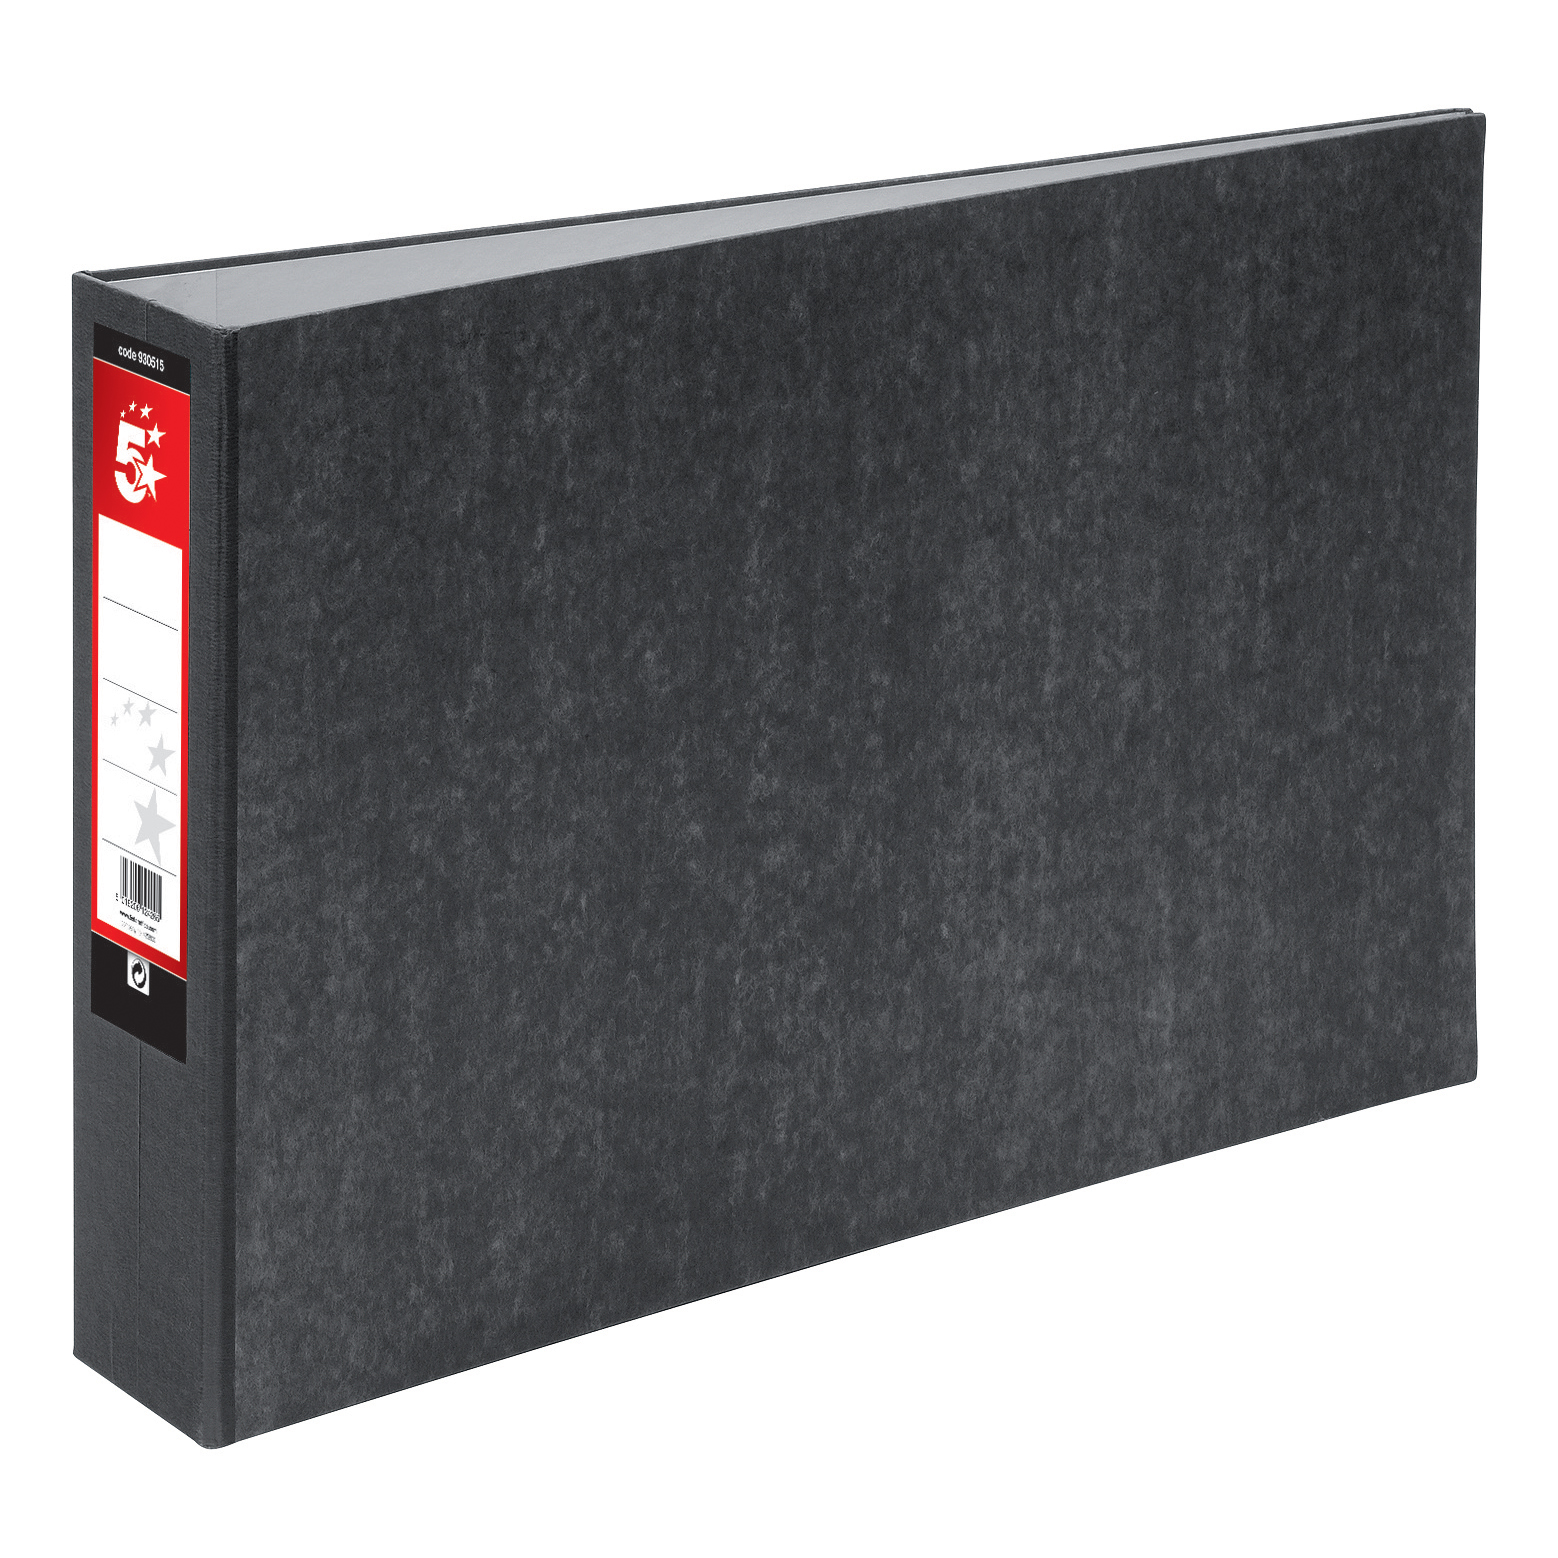 5 Star Office Lever Arch File 70mm Spine Oblong Landscape A3 Cloudy Grey Pack 2